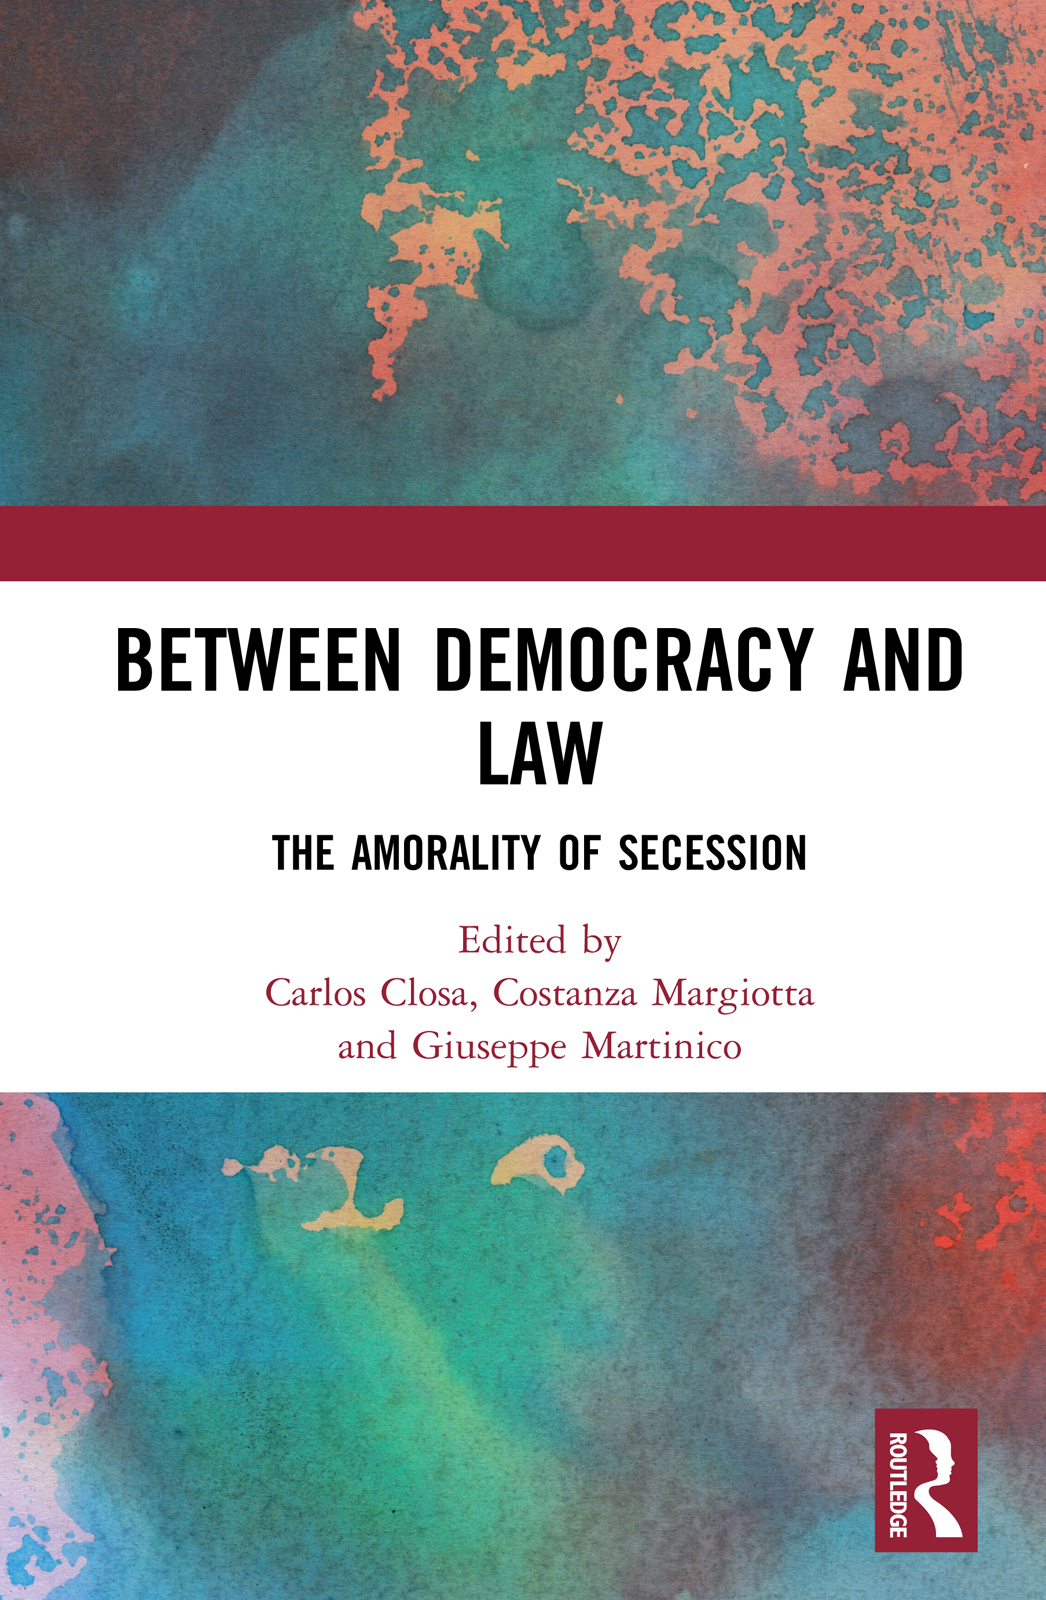 Between Democracy and Law: The Amorality of Secession book cover